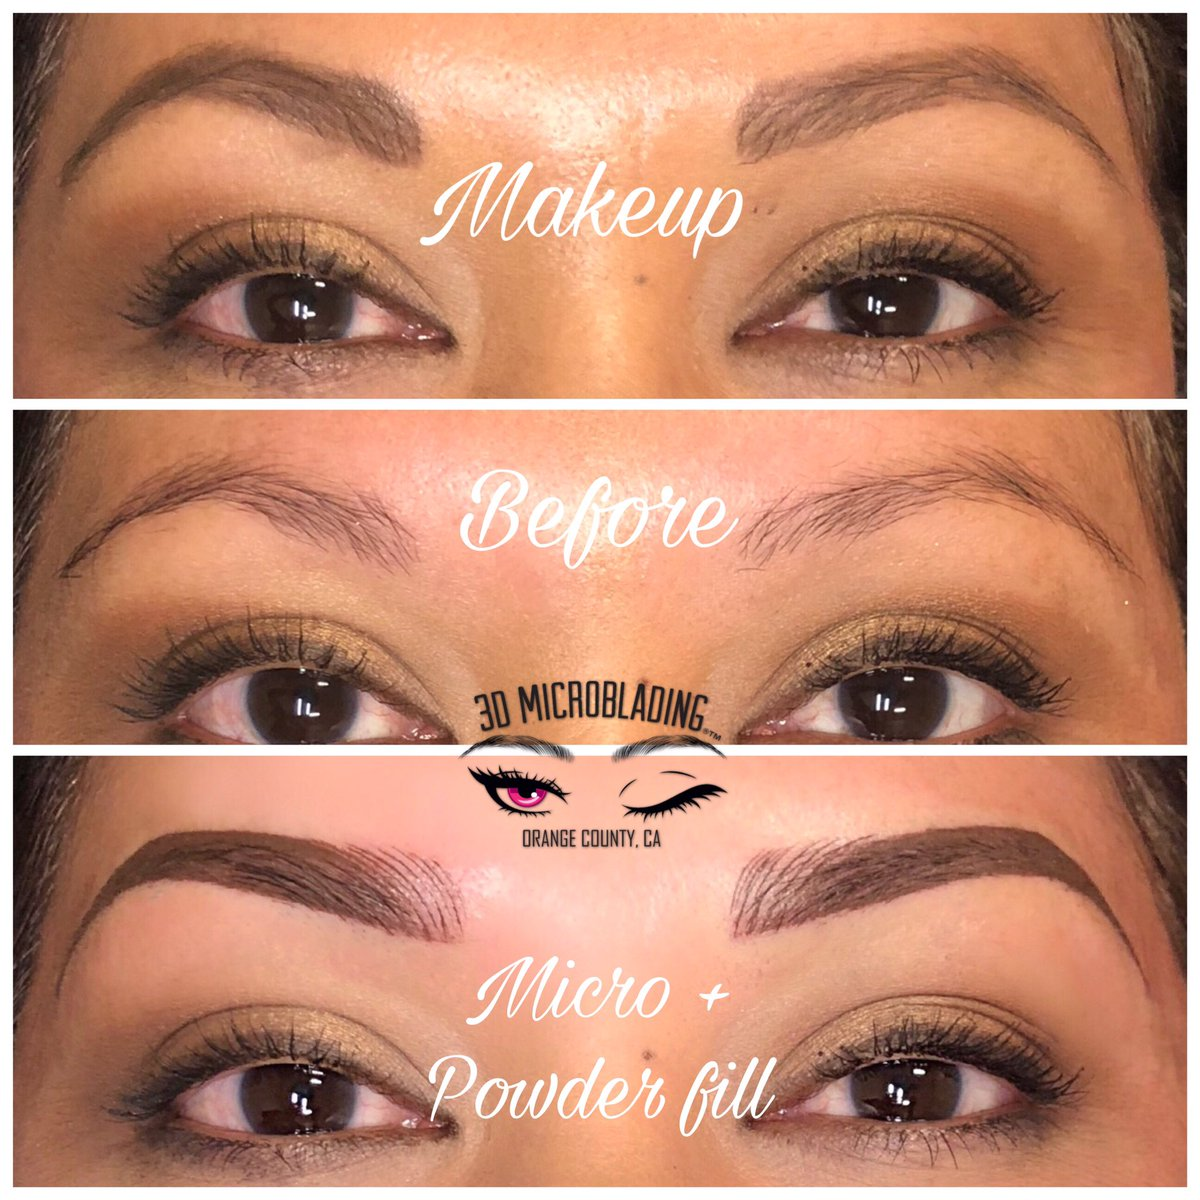 3D Microblading (@3DMicroblading) | Twitter